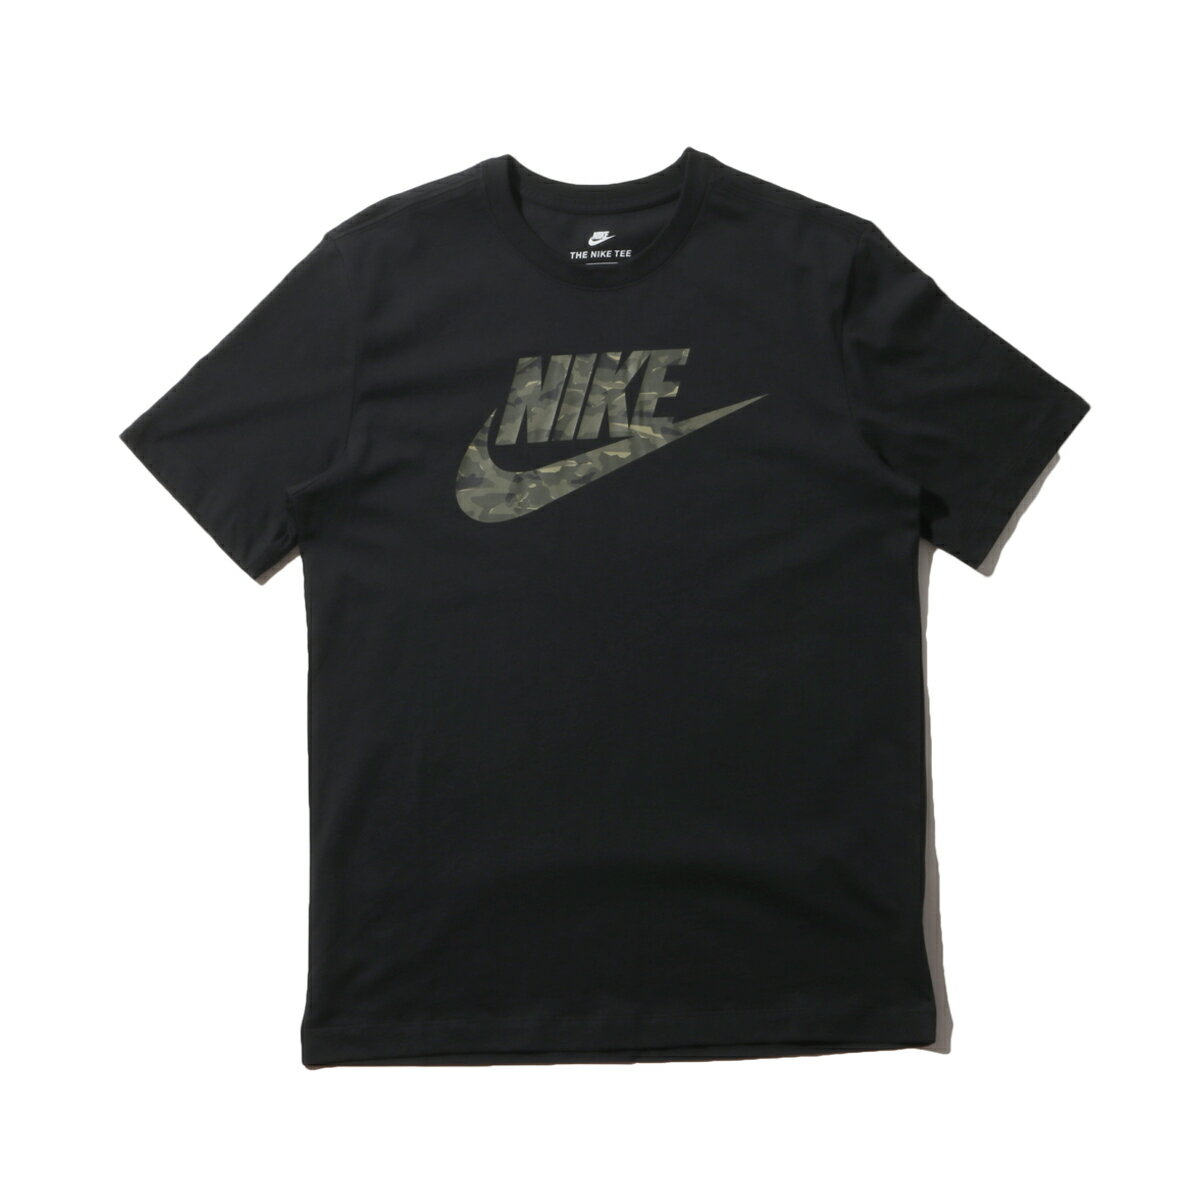 NIKE AS M NSW TEE CAMO PACK 2 AS(ナイキ NSW カモ パック S/S Tシャツ 2)BLACK/MEDIUM OLIVE/NEUTRAL OLIVE【メンズ Tシャツ】18FW-I